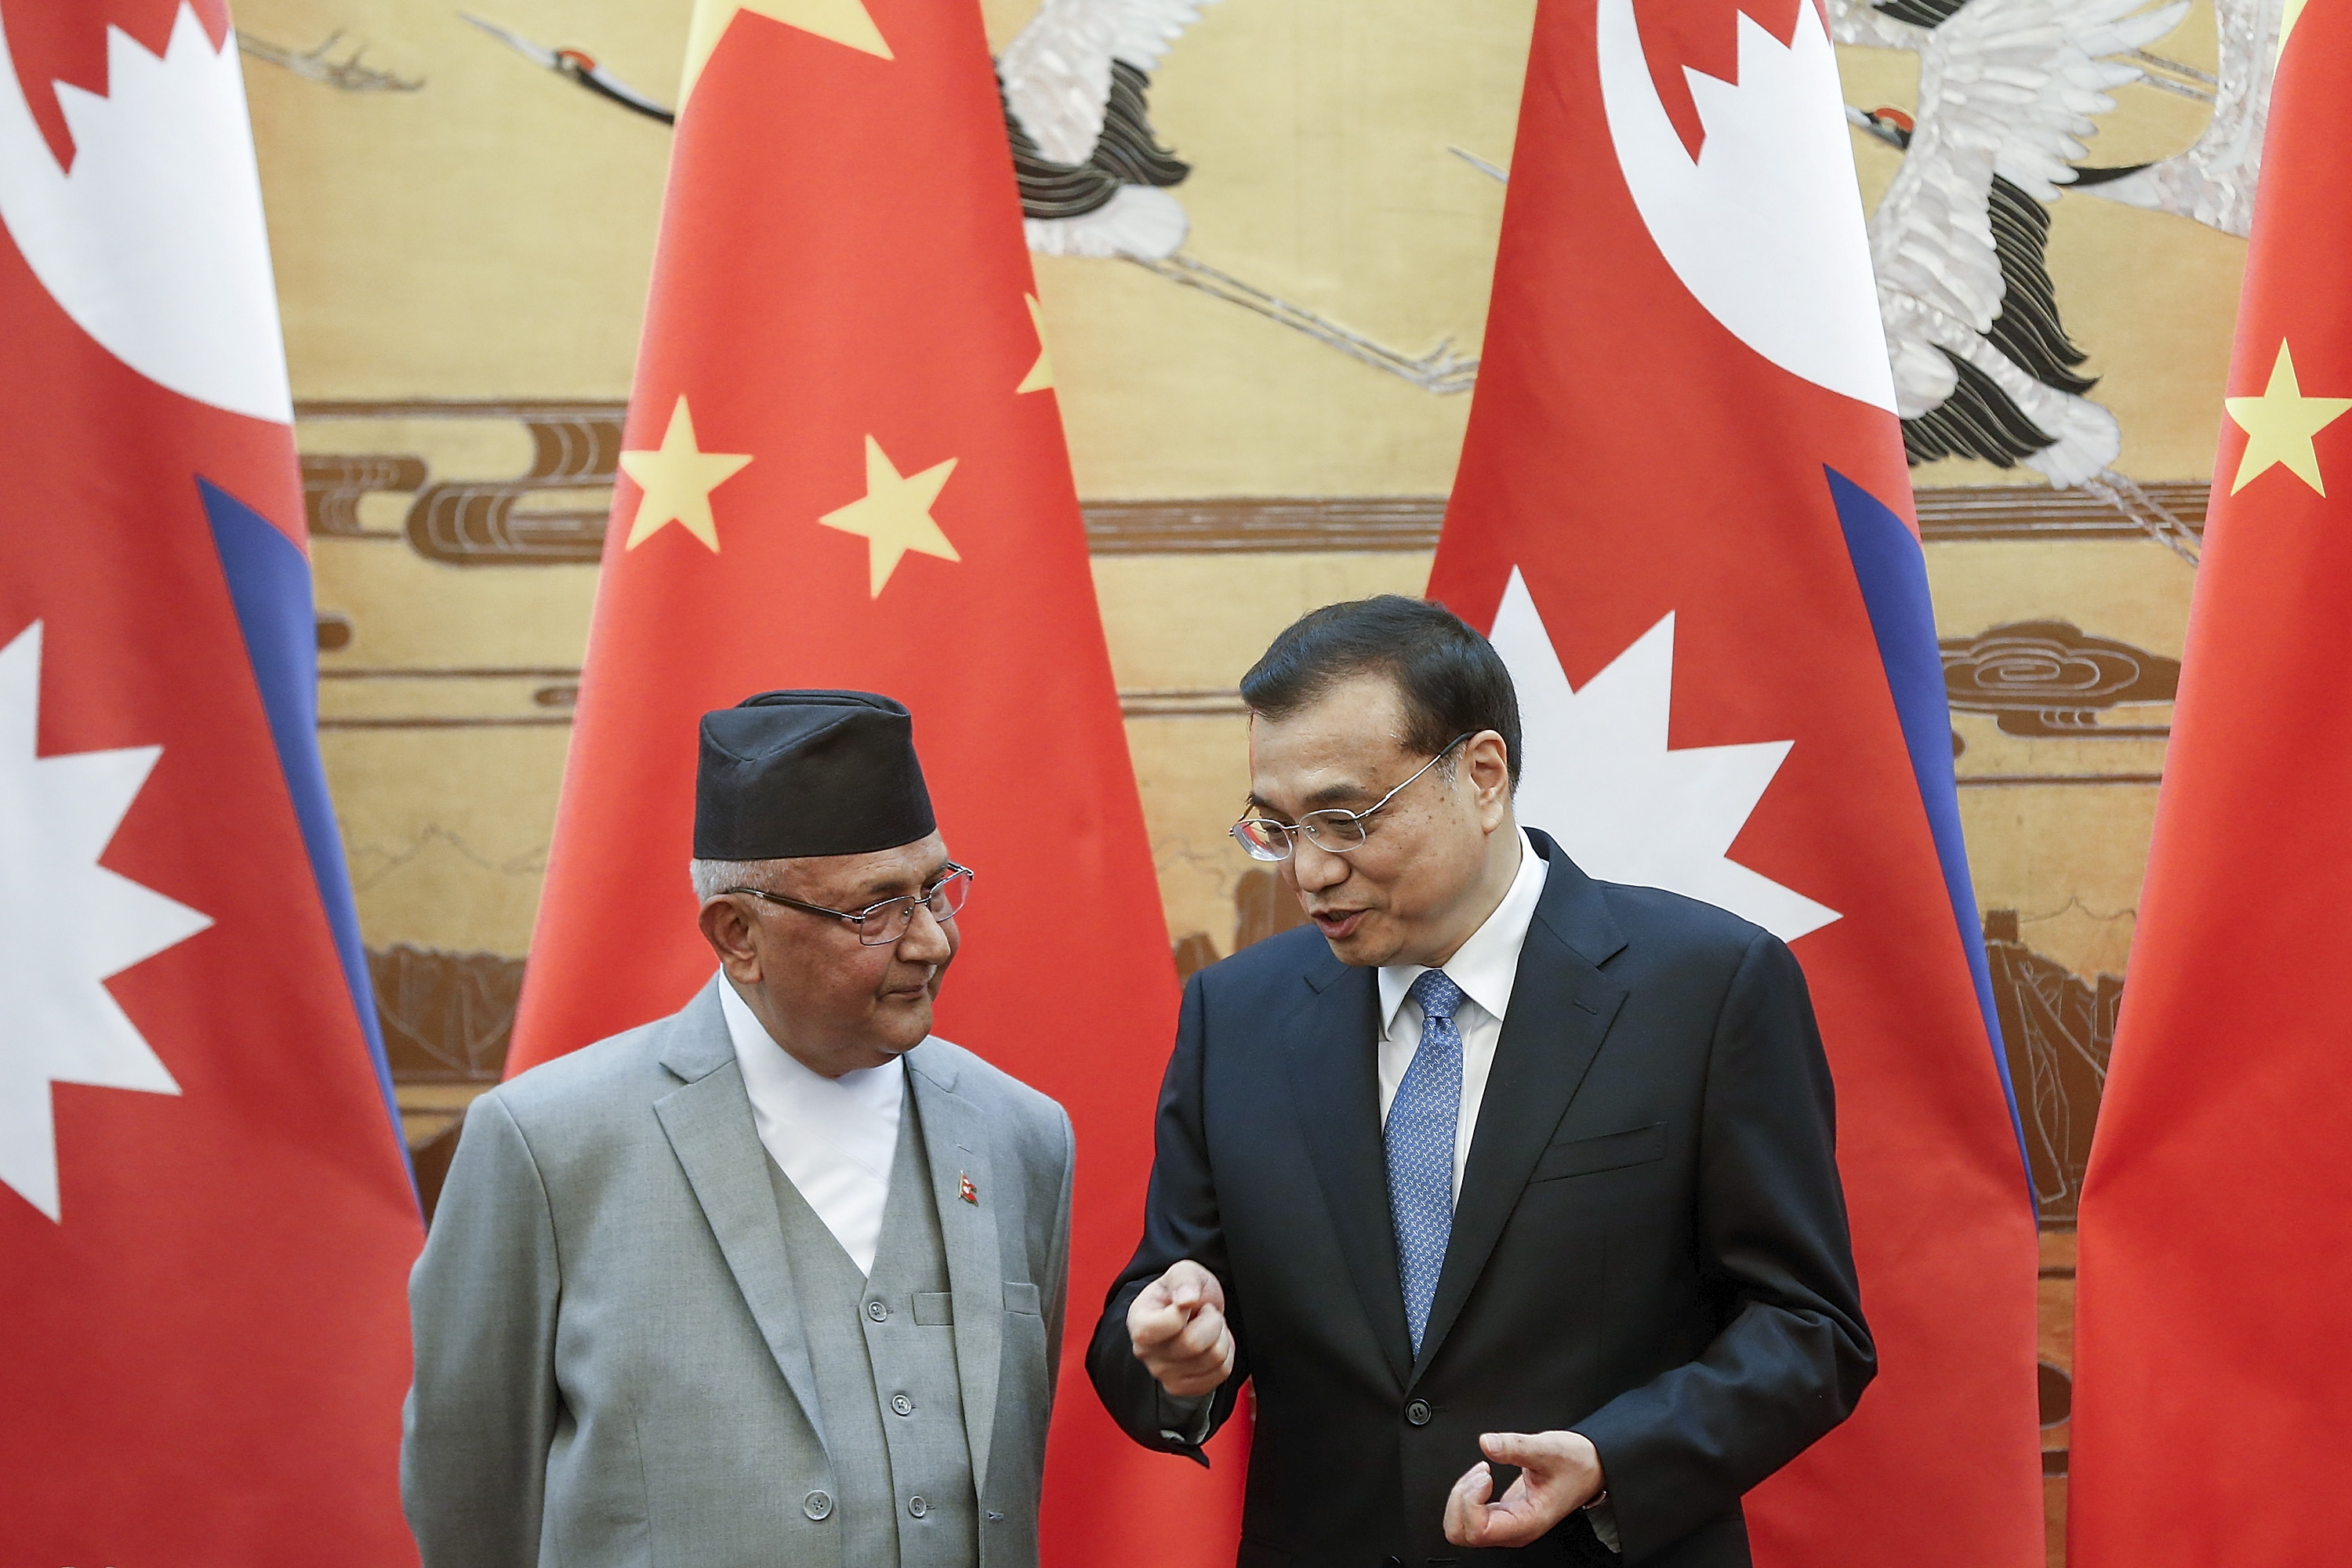 China's Premier Li Keqiang, right, talks to Nepal's Prime Minister K.P. Sharma Oli during a signing ceremony at the Great Hall of the People in Beijing on March 21, 2016